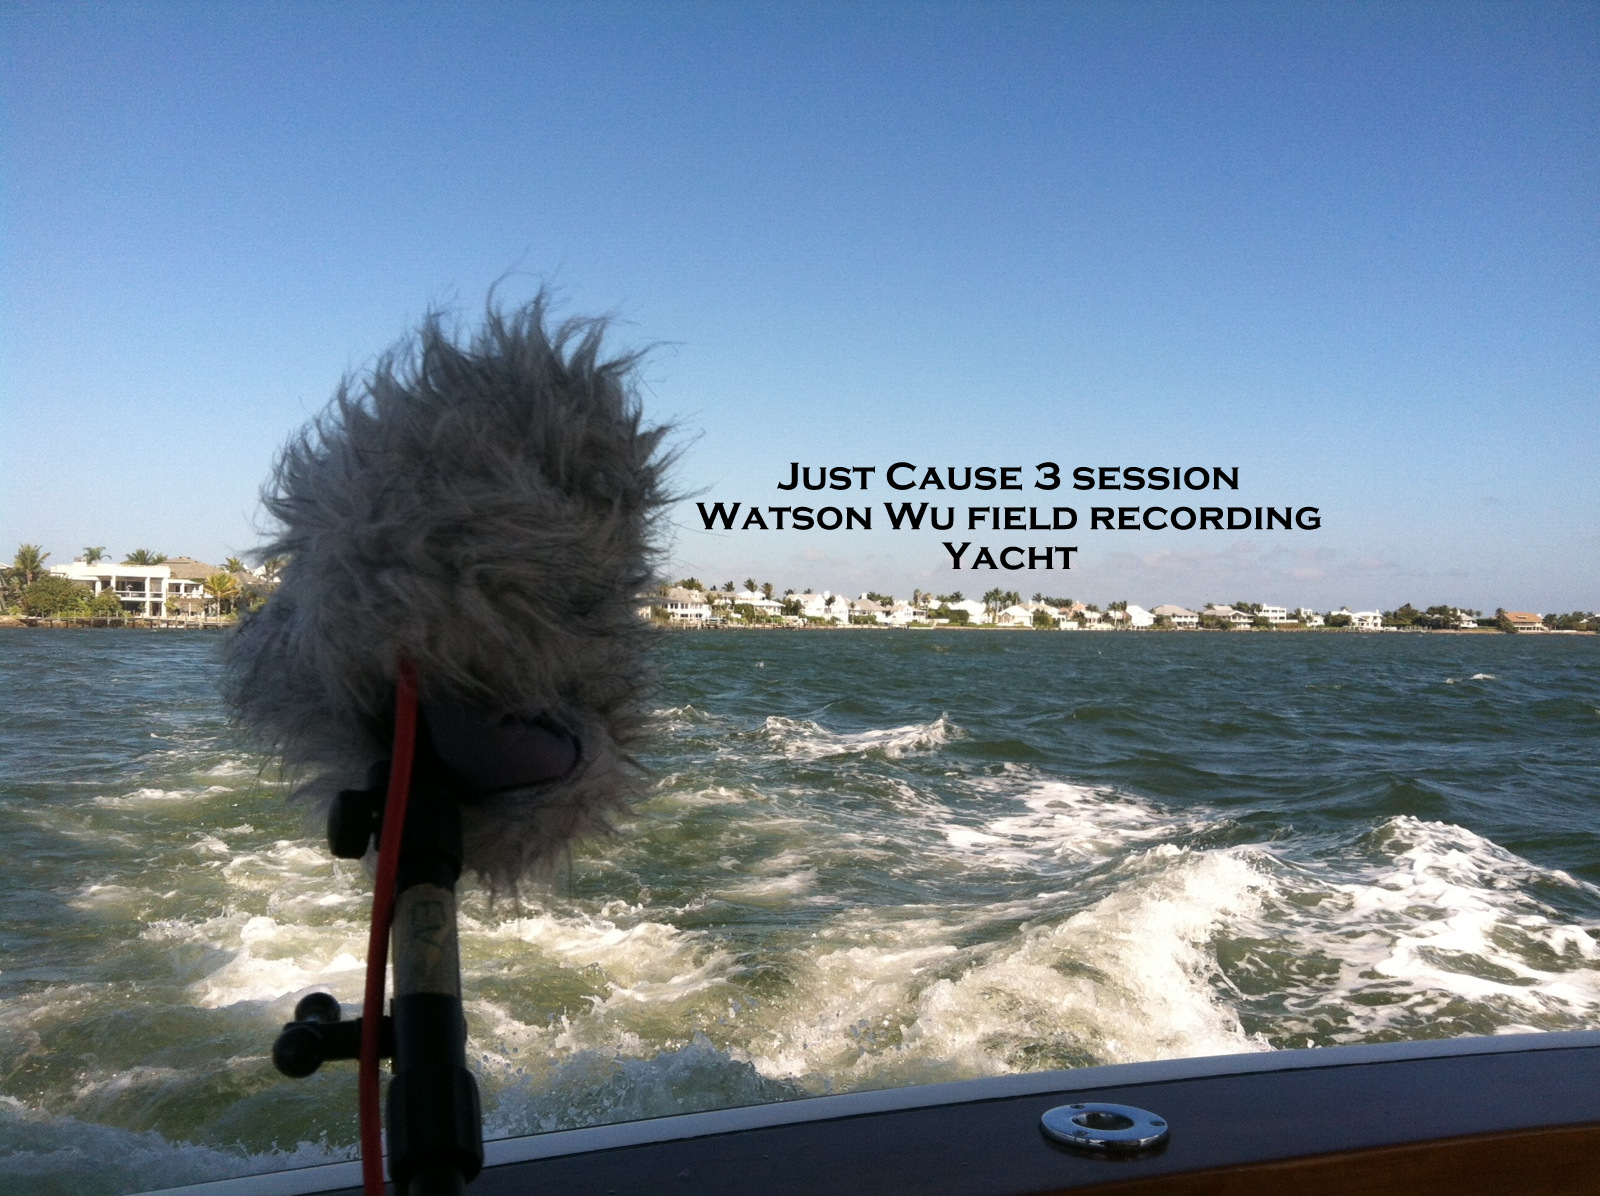 Field recording a yacht. This was the hardest session I have ever conducted. I got sea sick and was throwing up on the side of the ship. I've never been sick from being on a ship but I guess the diesel fumes and the swaying got to me. For the love of field recording, I kept going! The only thing that worried me was that my puking sounds may have ruined the recordings. Fortunately, during playback, I couldn't hear those unwanted nasty sounds.